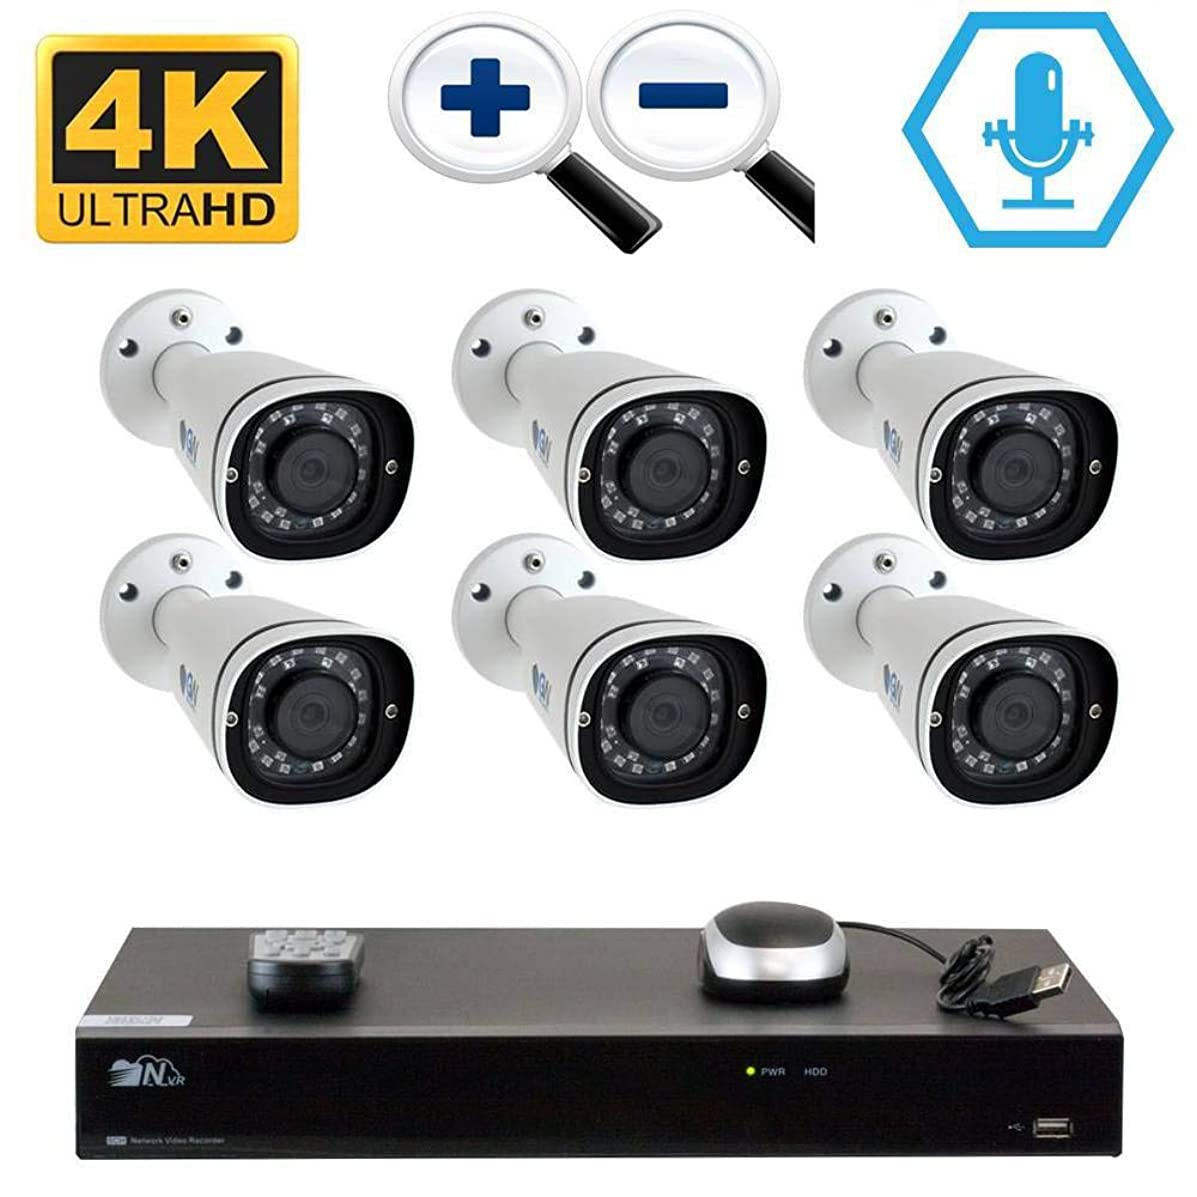 GW 8CH H.265 PoE NVR Ultra-HD 4K (3840x2160) Video & Audio Security Camera System with 6 x 4K (8MP) Microphone 3X Motorized Zoom IP Bullet Camera, 100ft Night Vision, 4TB HDD